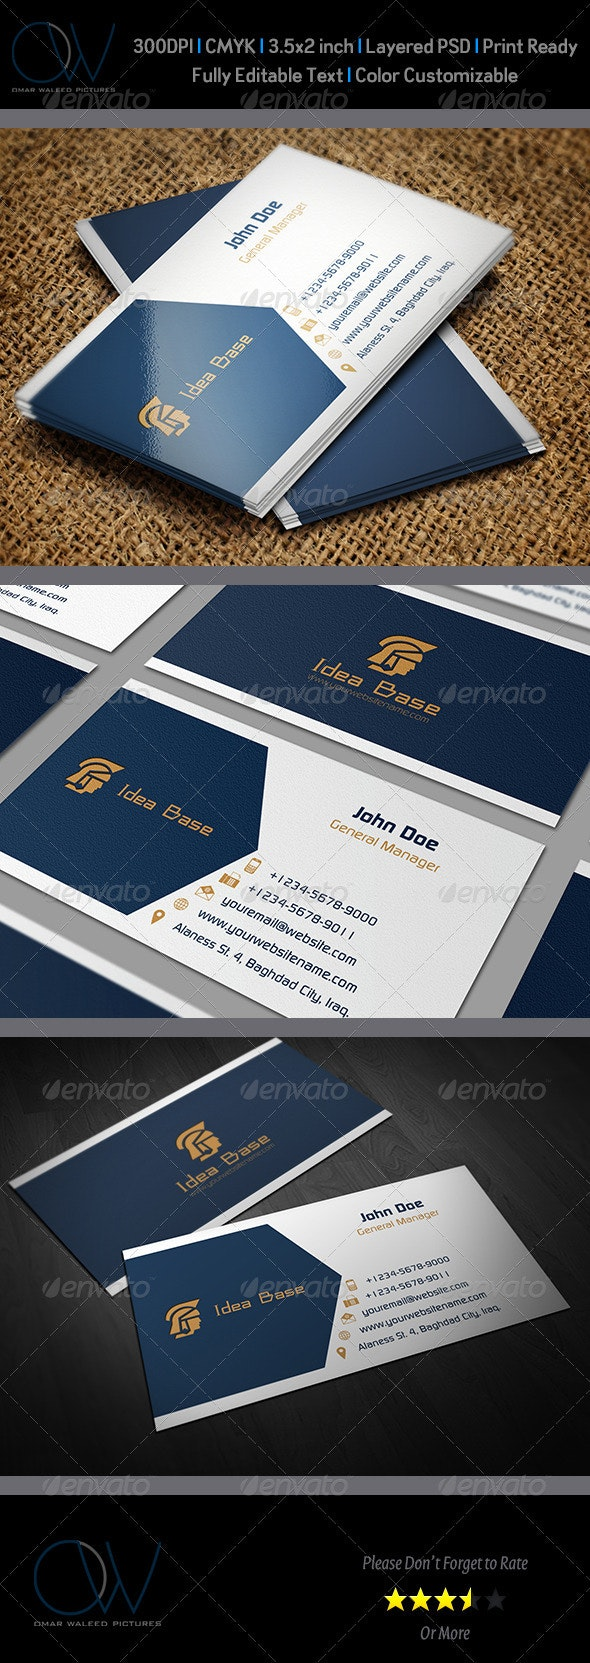 Idea Base Business Card - Corporate Business Cards